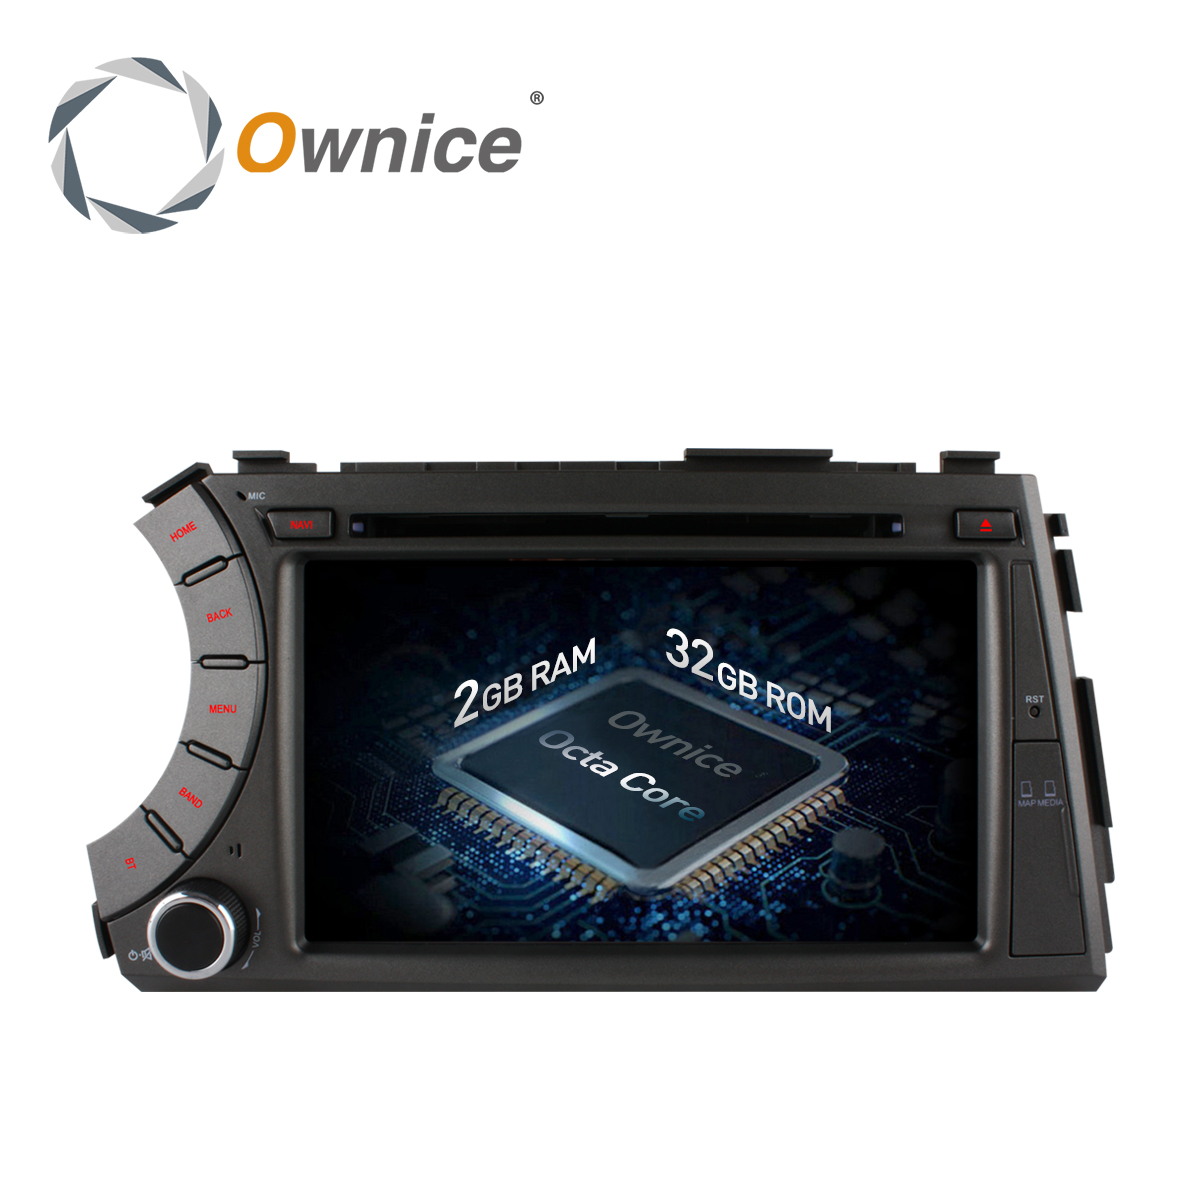 Ownice C500 Octa 8 Core Android 6.0 Car DVD for ssangyong Actyon Kyron with car gps radio wifi 2GB RAM 32GB ROM Support 4G LTE крышка eley диаметр 20 см